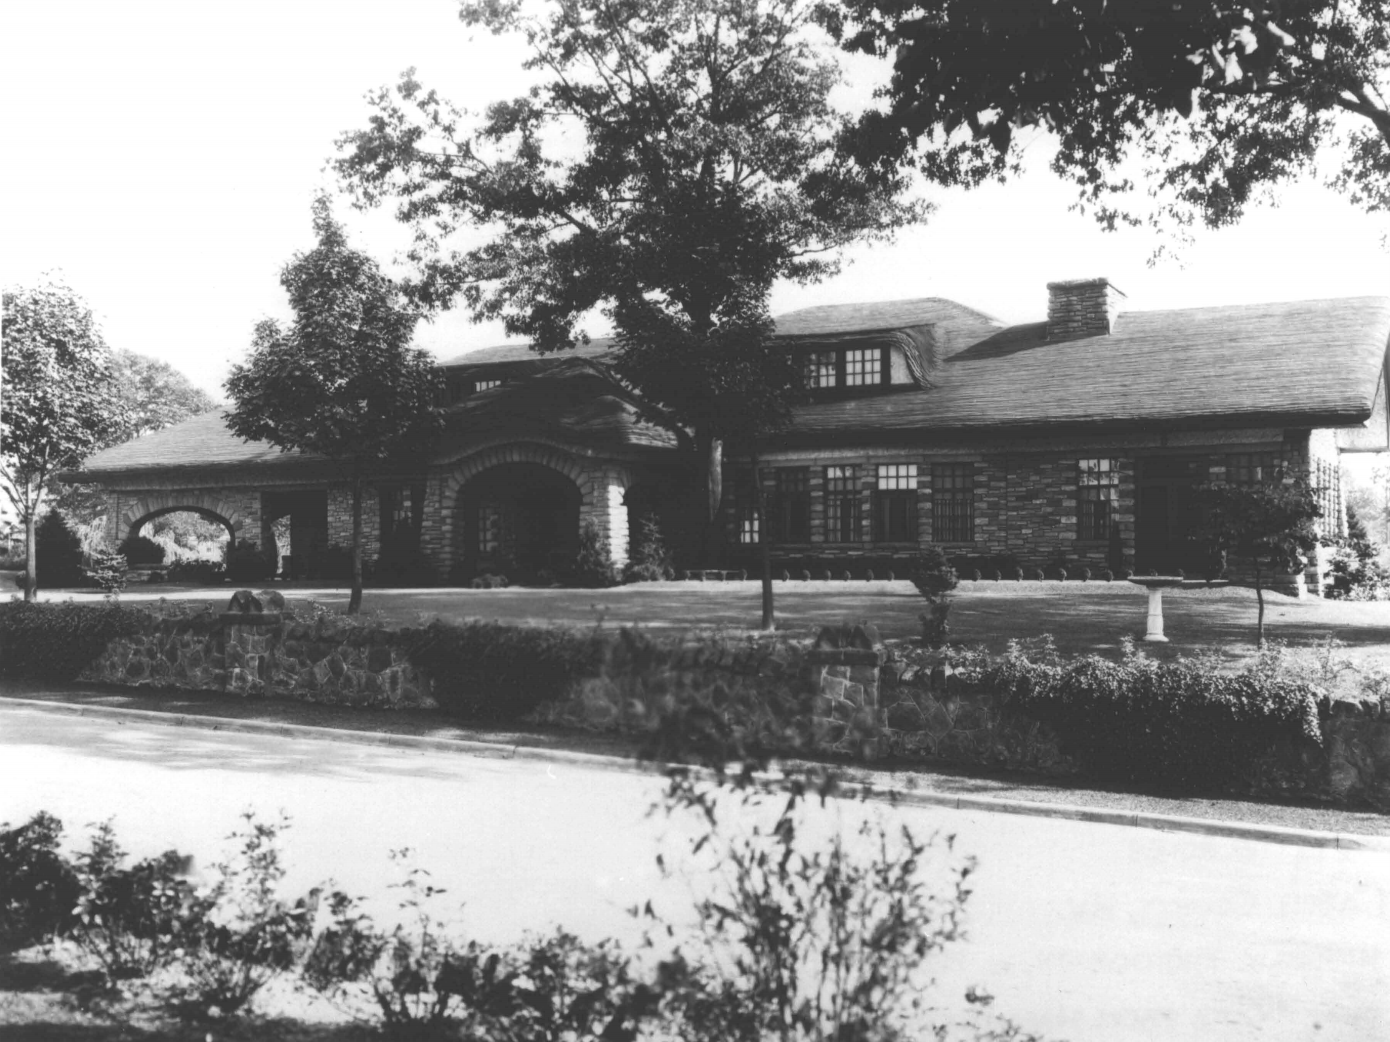 The Ricketts House, pictured in 1925 when it was completed